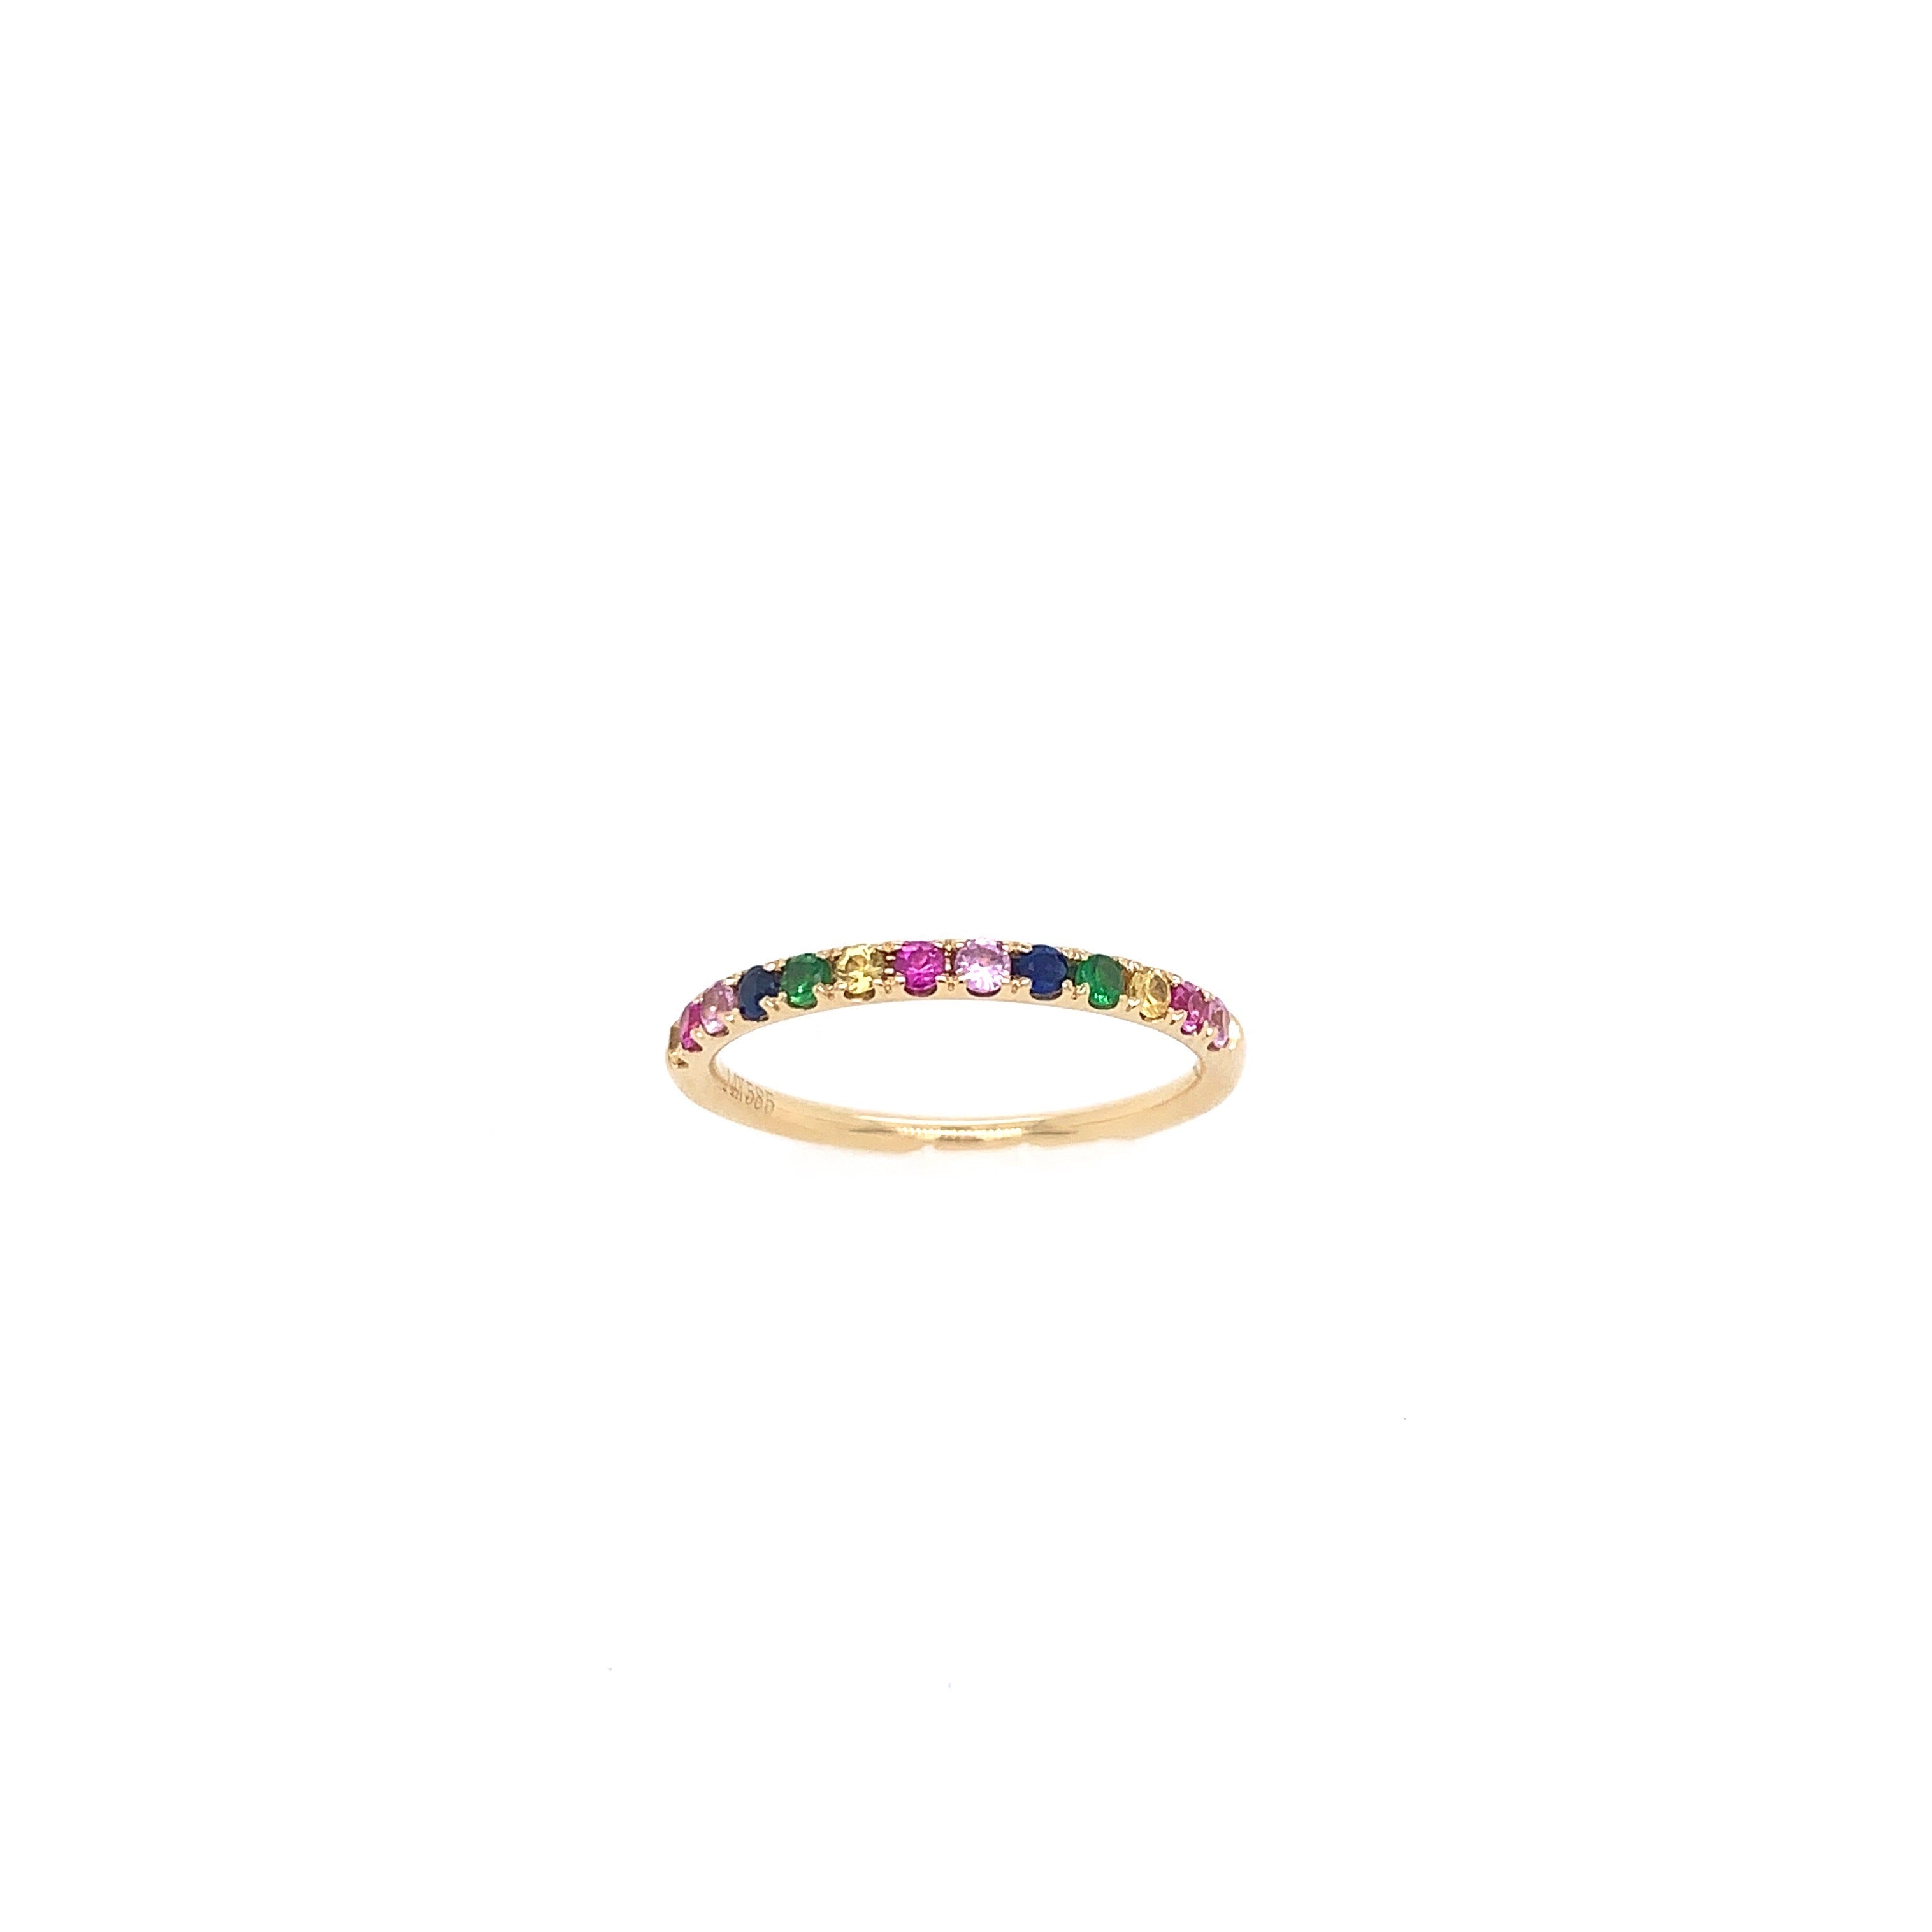 Rainbow Gemstone Ring (1/2 Setting)